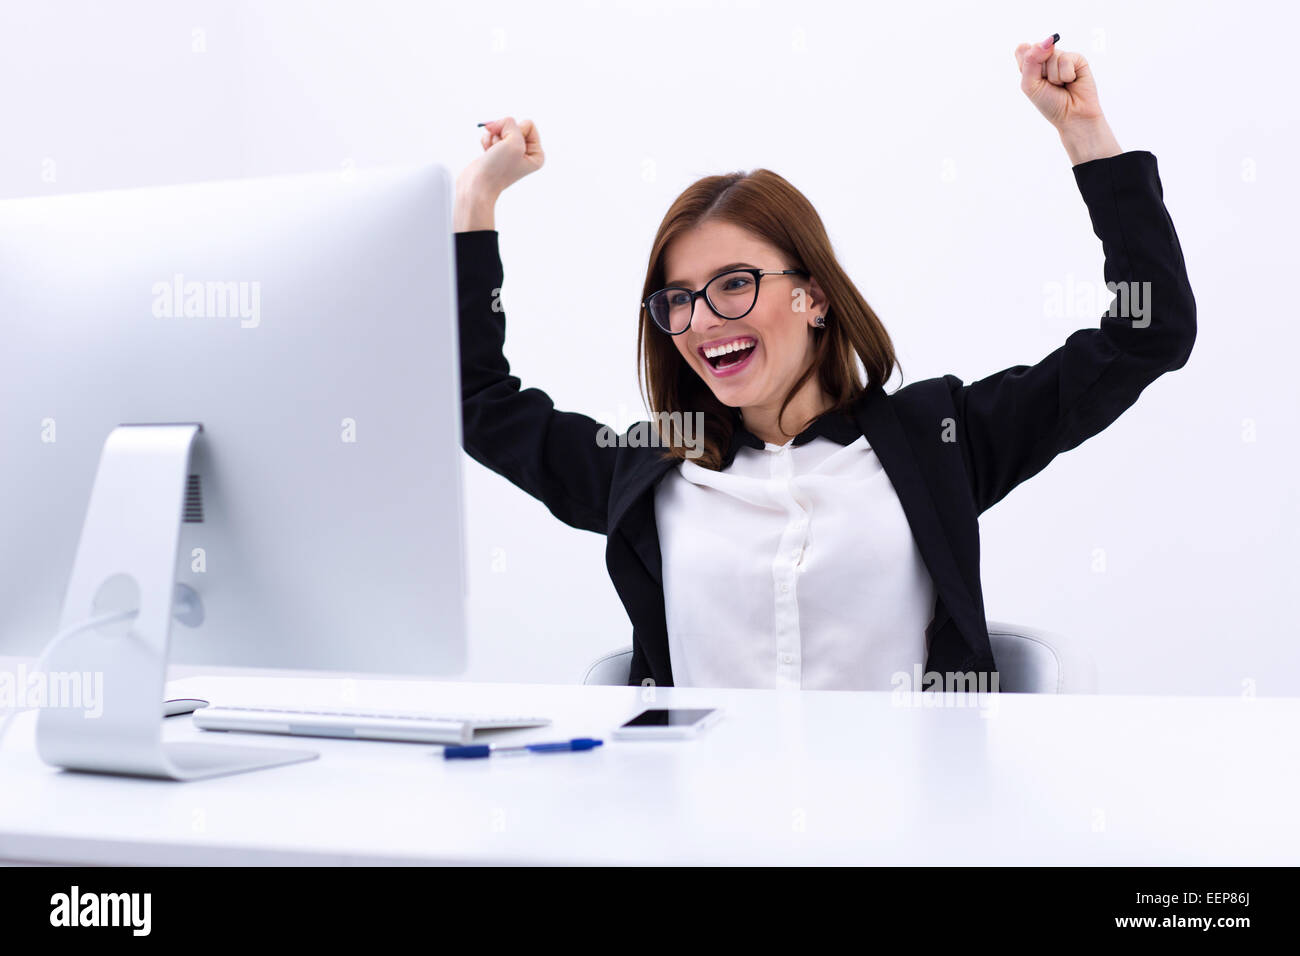 Excited businesswoman rejoicing at her success cheering and raising her fists in the air - Stock Image